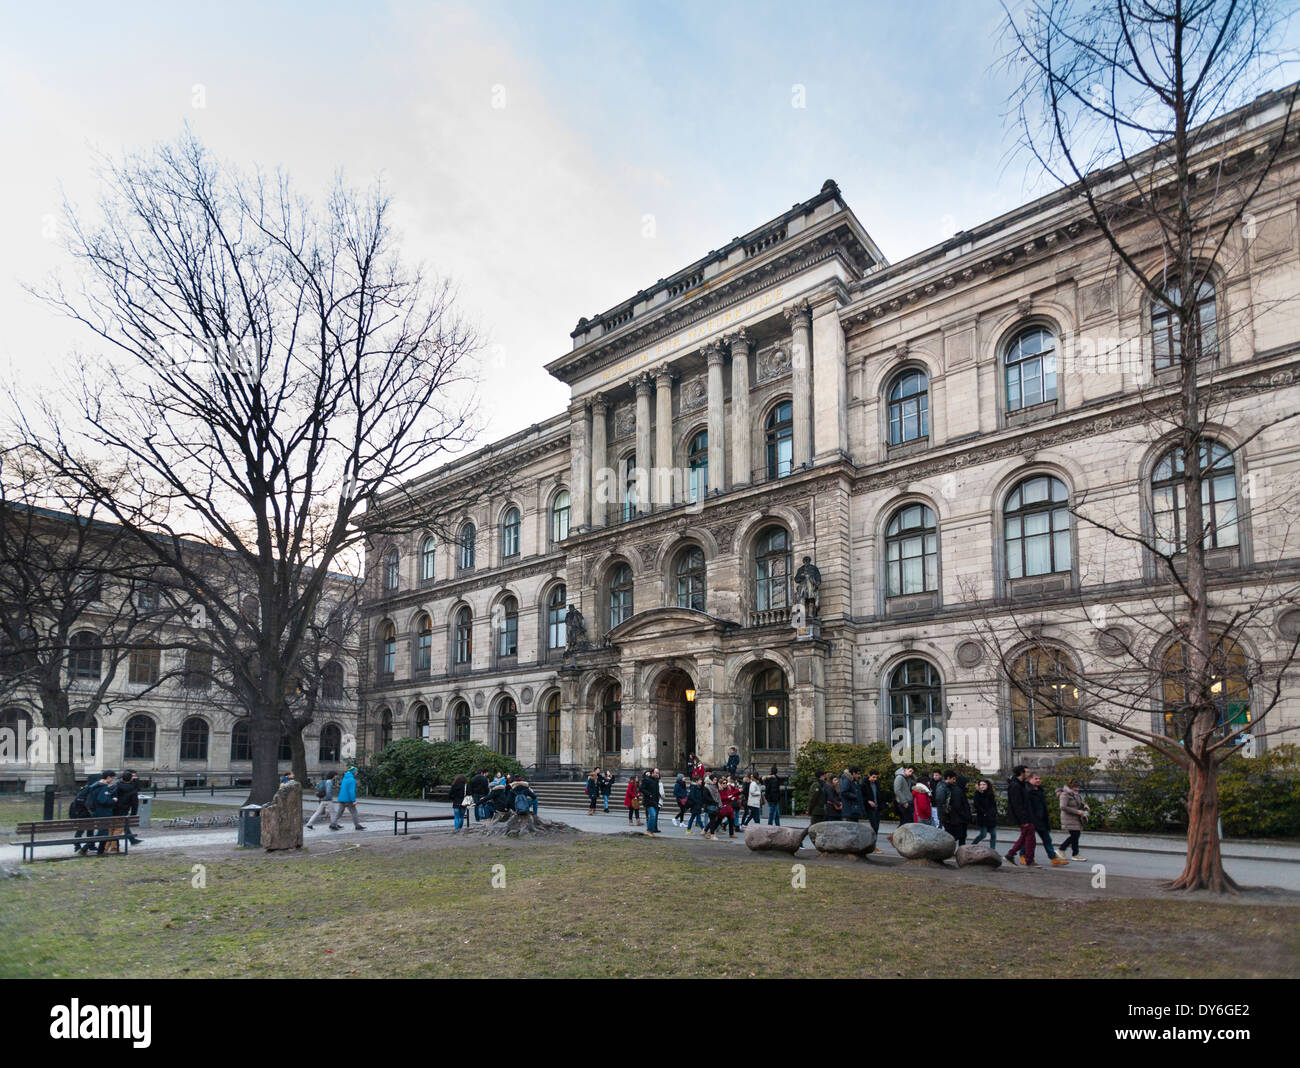 Museum of Natural History, Berlin, Germany - Stock Image